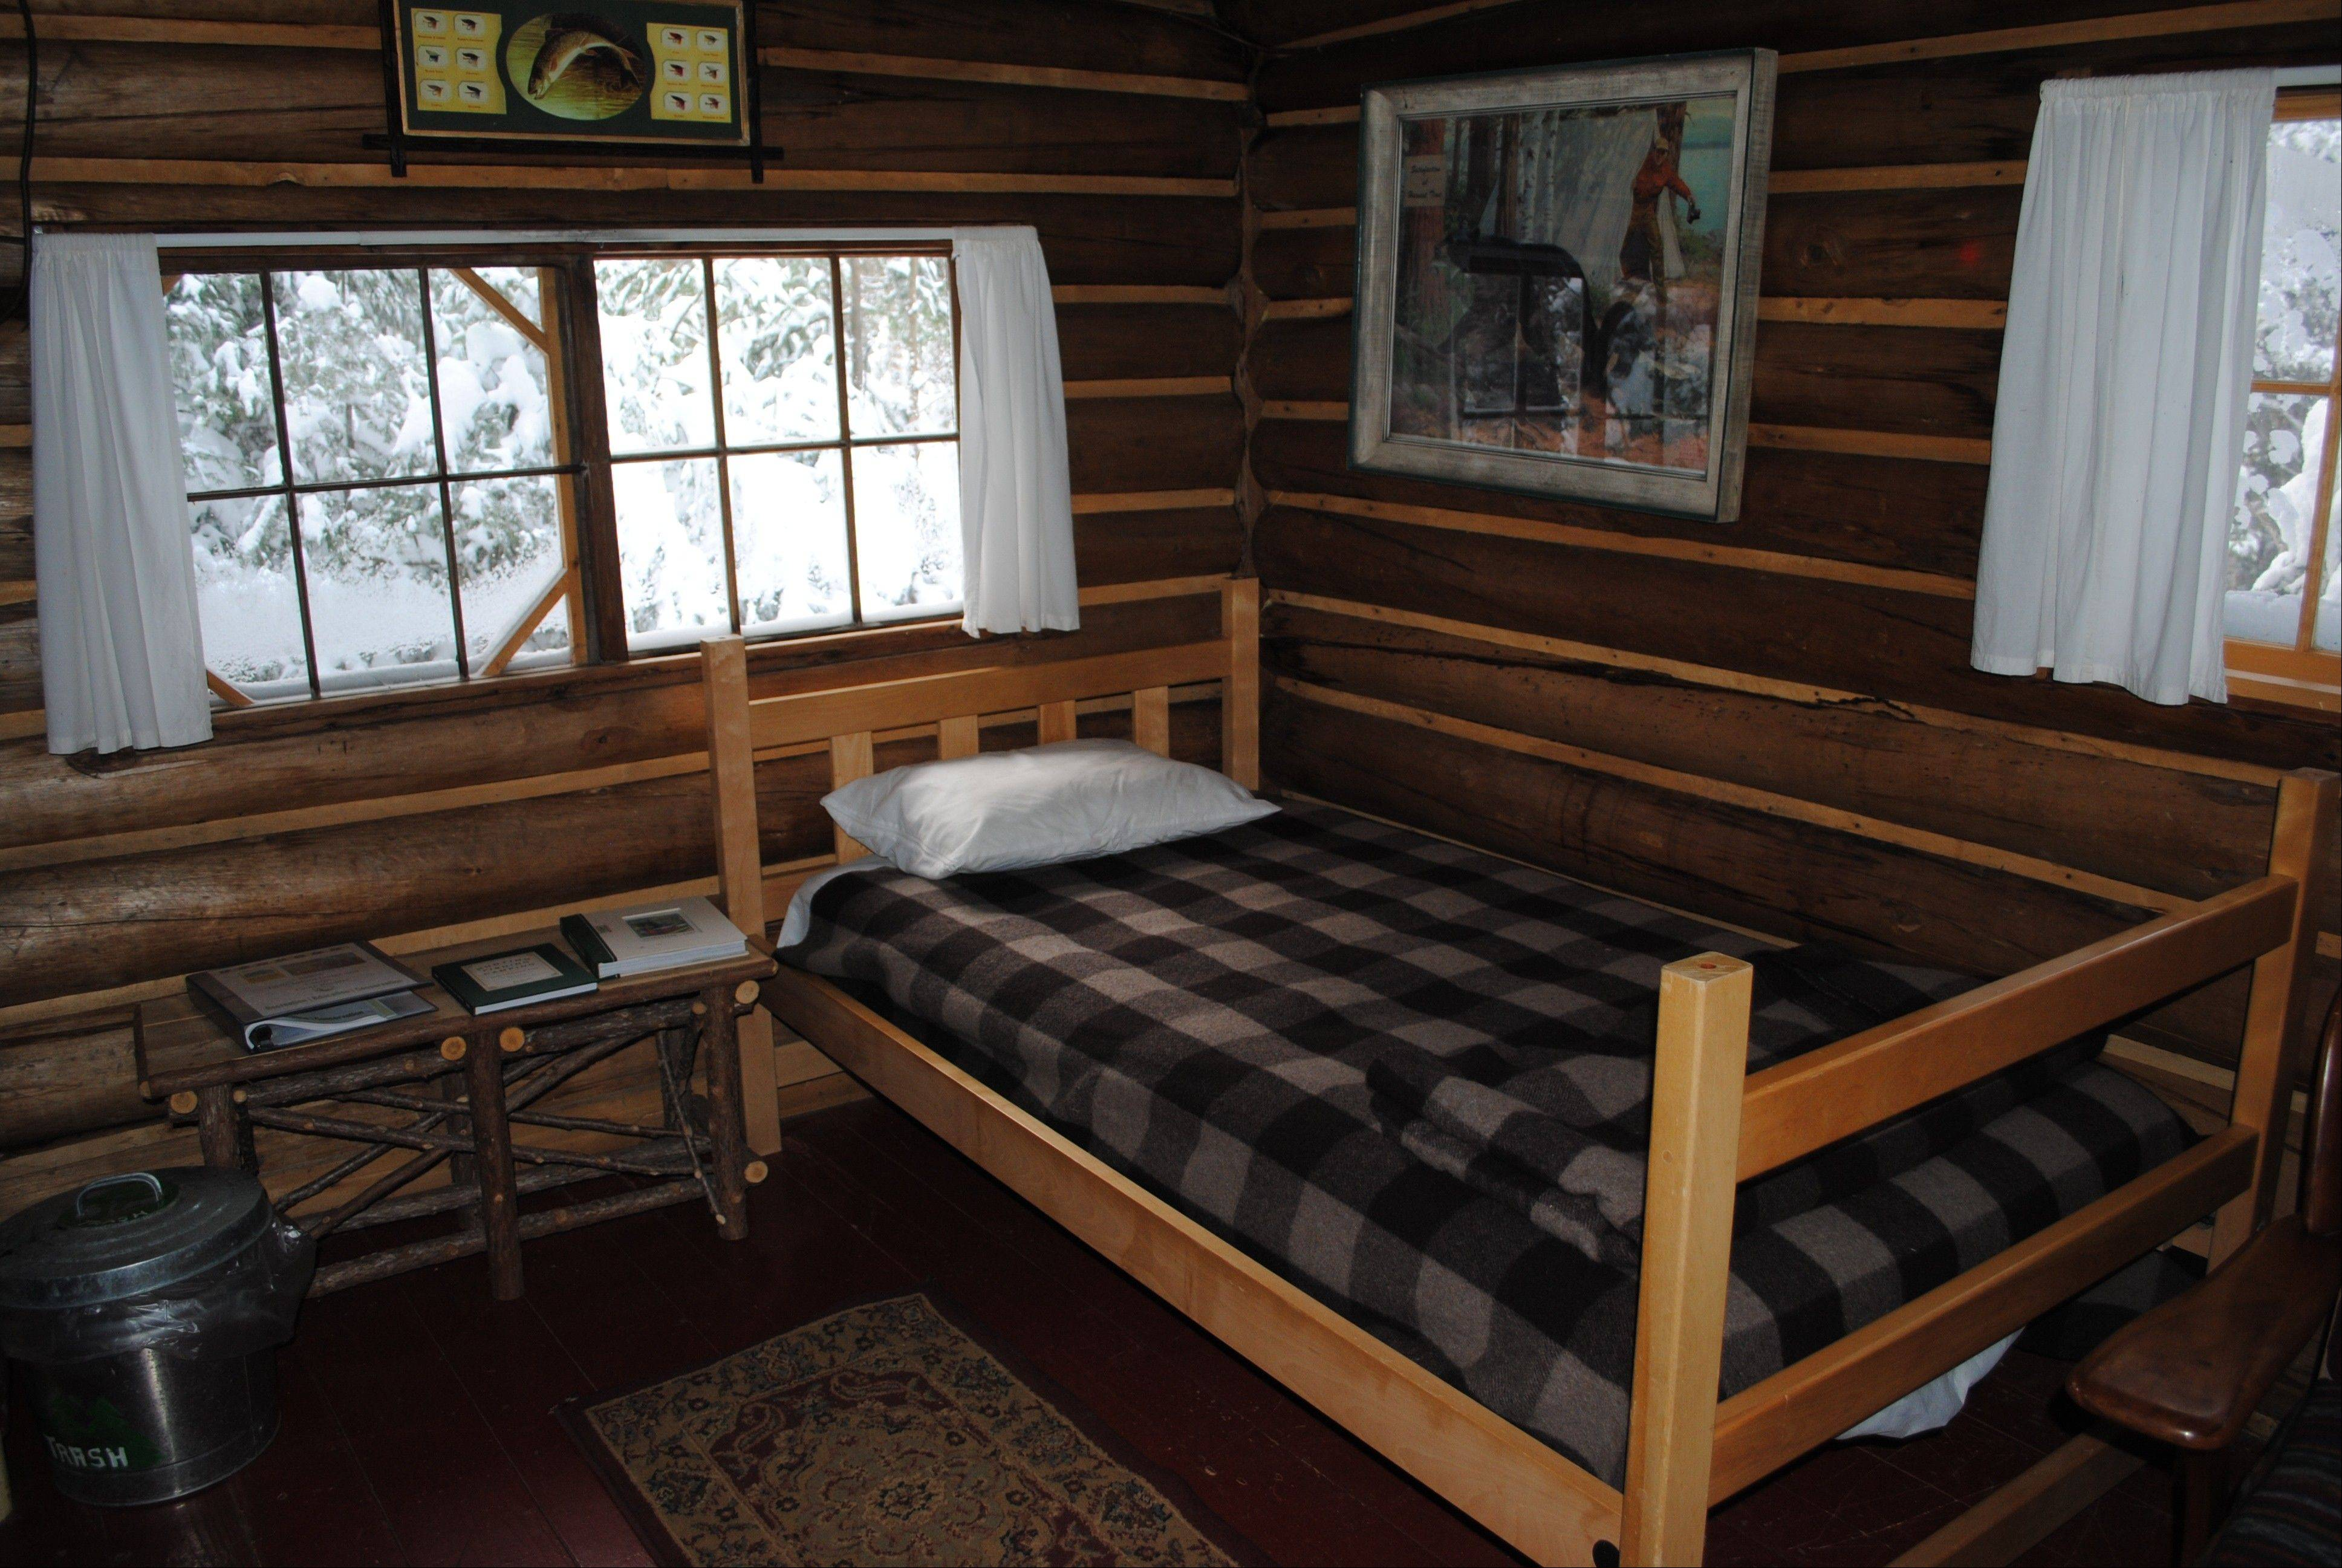 The interior of a rustic cabin at Little Lyford Lodge and Cabins. The cabin has no electricity, is heated by a wood stove and lit by gas lamp.